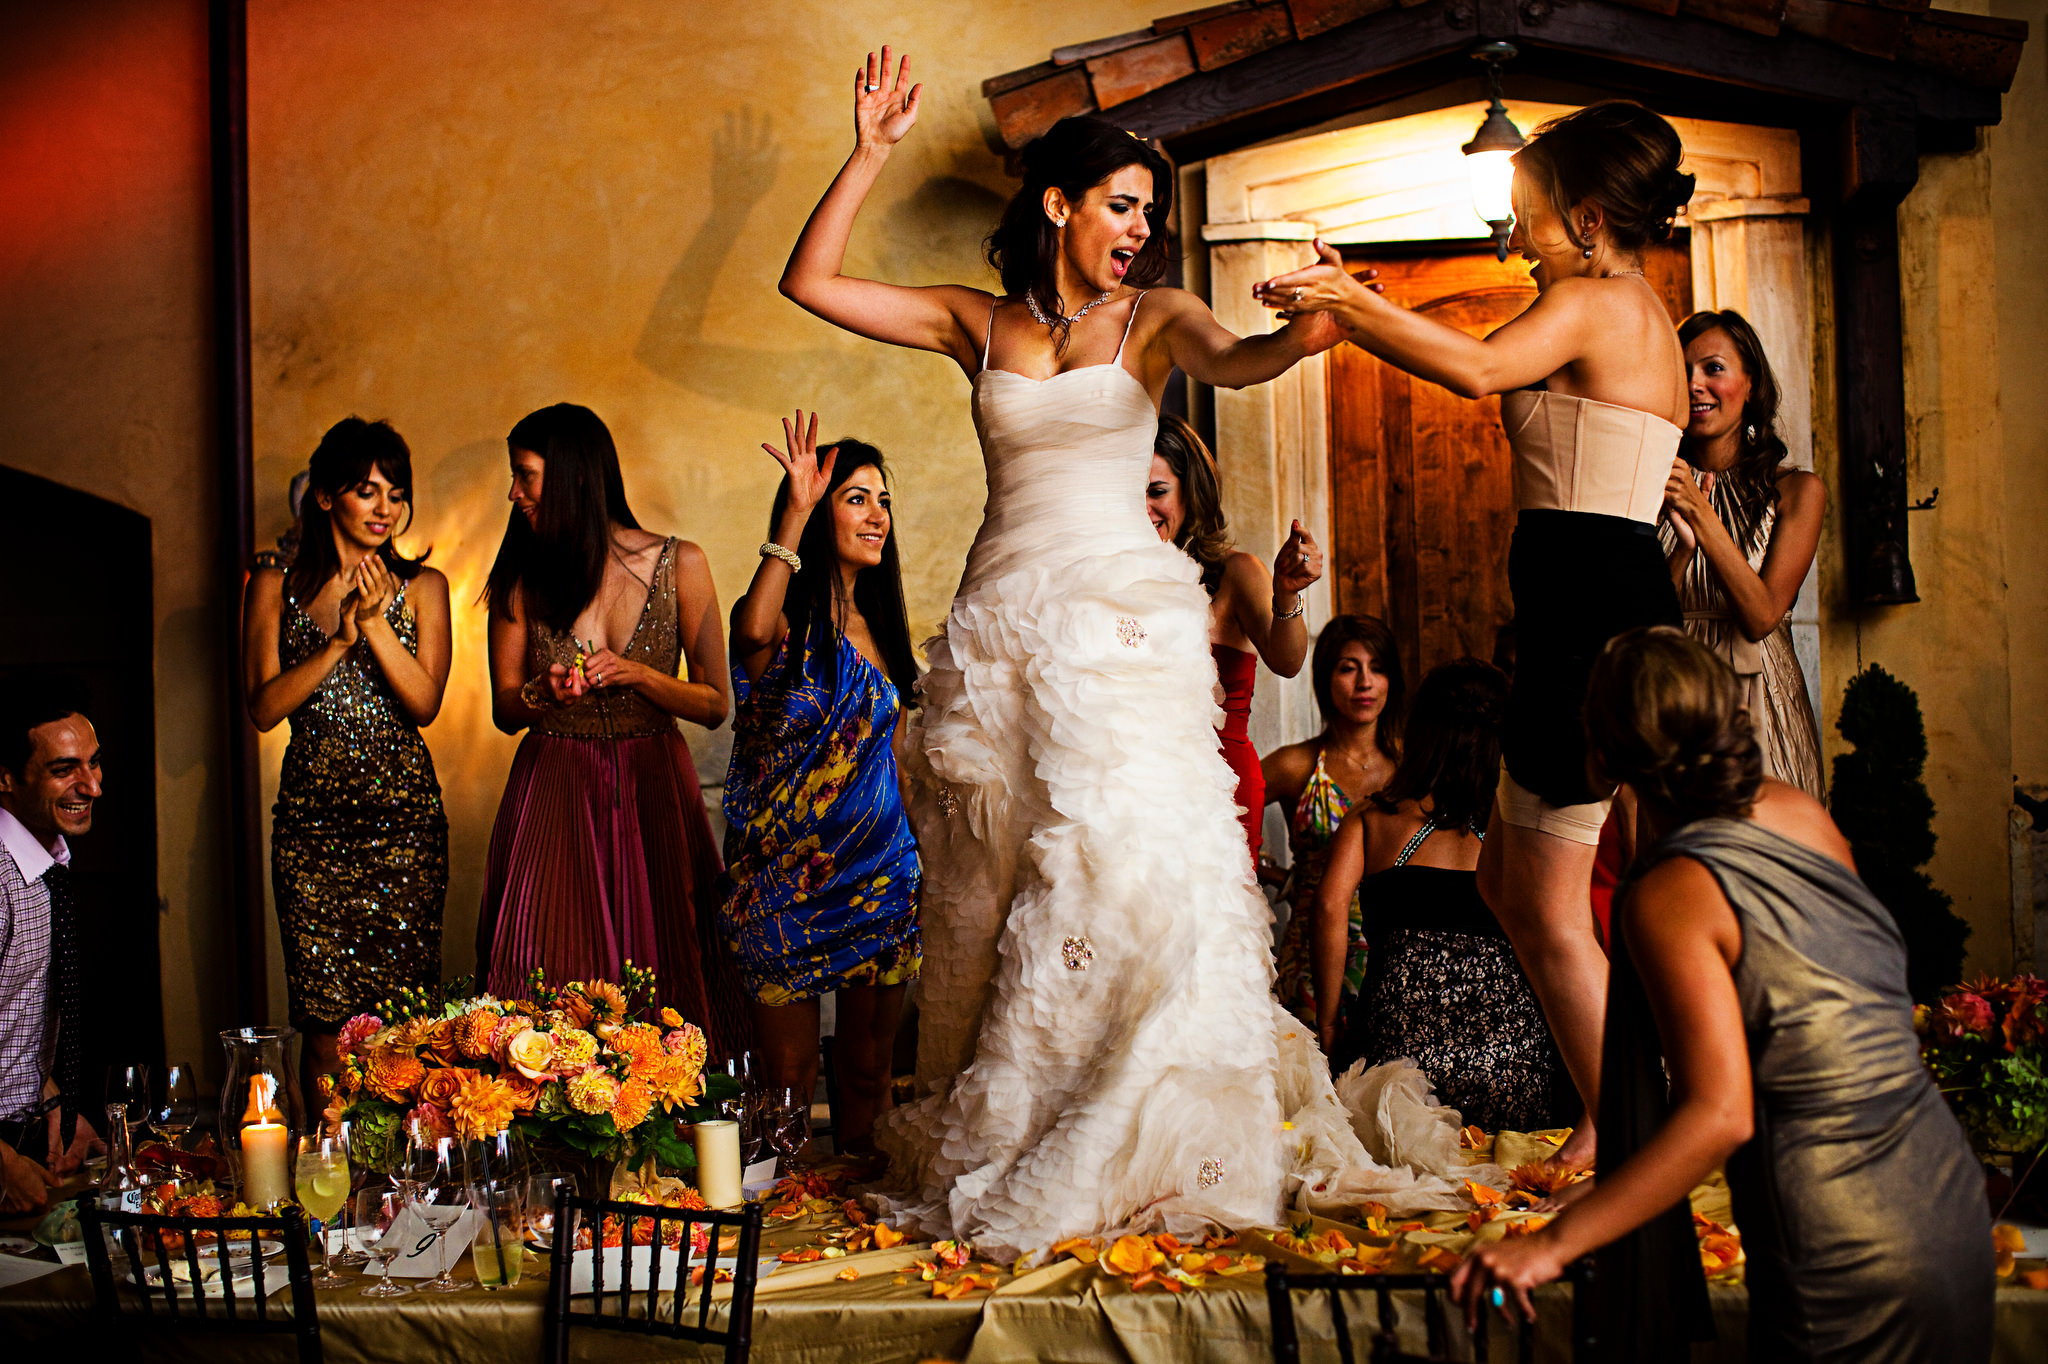 50 Best Documentary Wedding Photos of the Decade - photo by Chrisman Studios